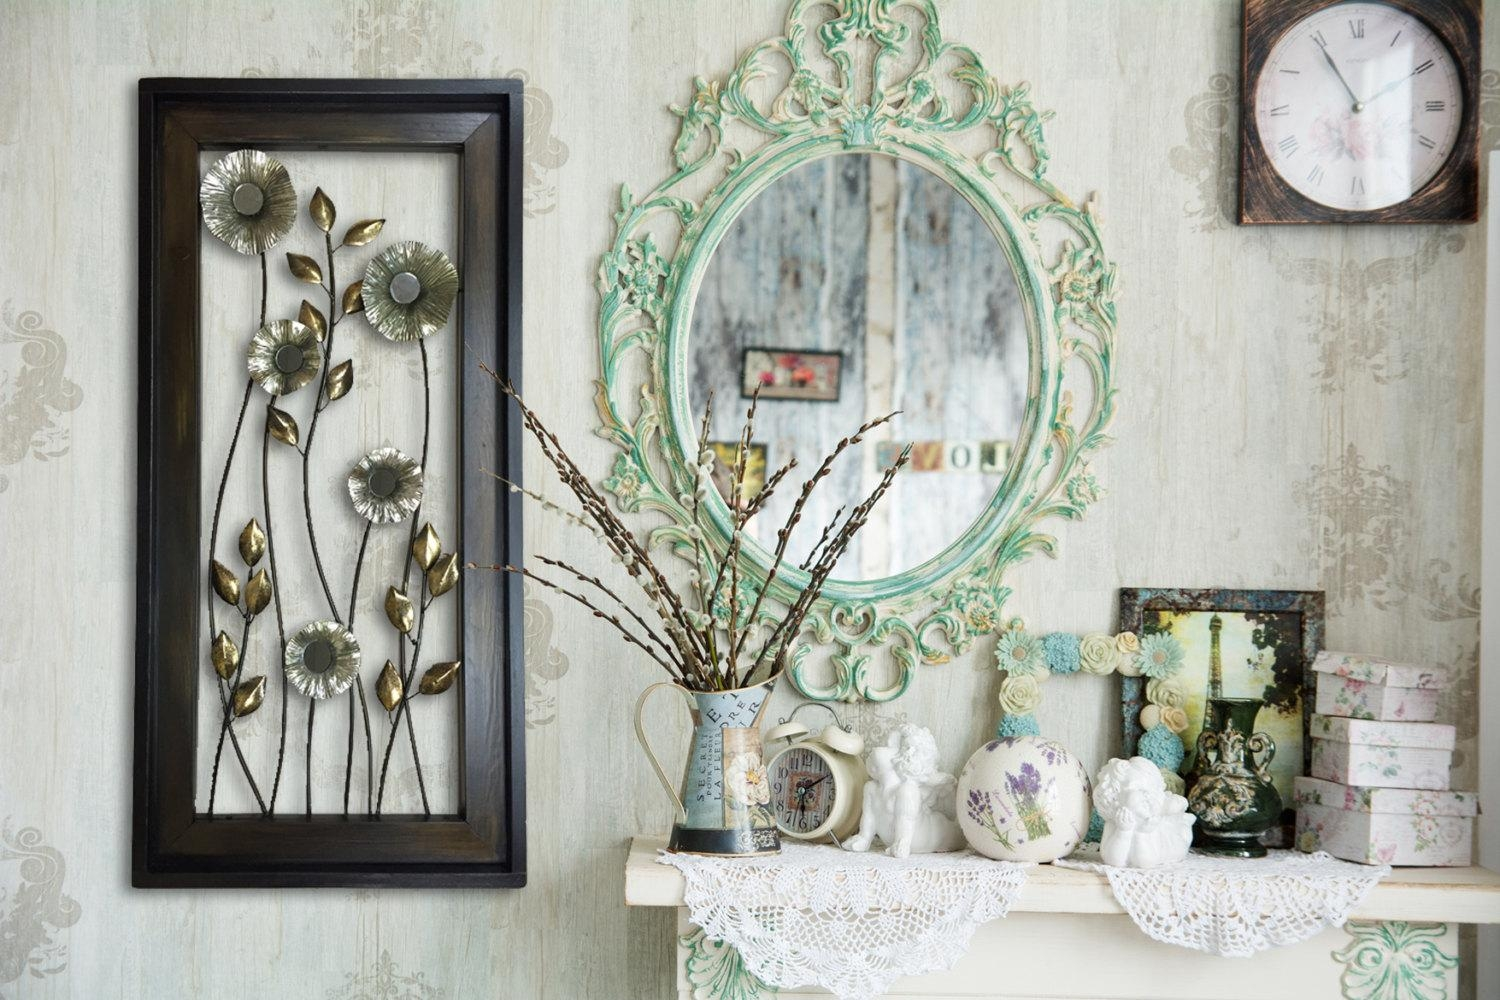 Metal Wall Art Wood Framed Flowers Mirrors Home Decor Large Pertaining To Copper Wall Art Home Decor (Image 12 of 20)